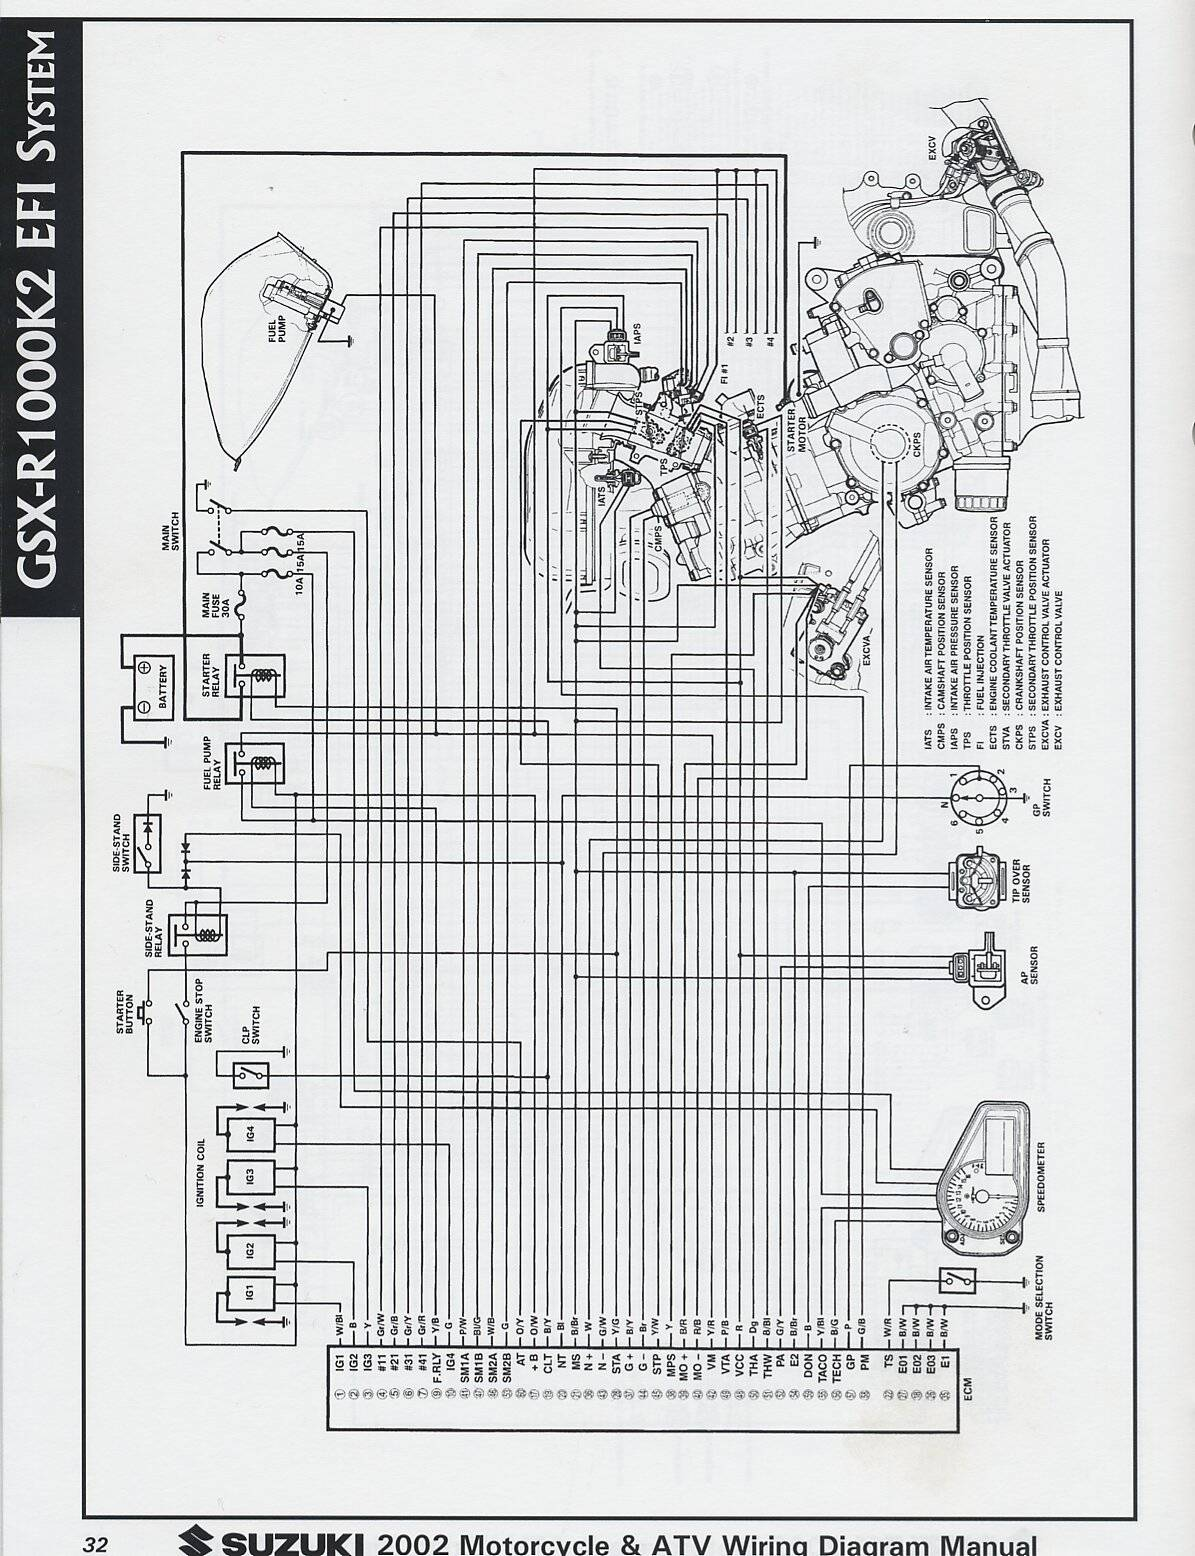 suzuki gsxr 1000 k3 wiring diagram - wiring diagram and ... wiring diagram 2003 gsx r1000 chevy 4l60e wiring diagram 2003